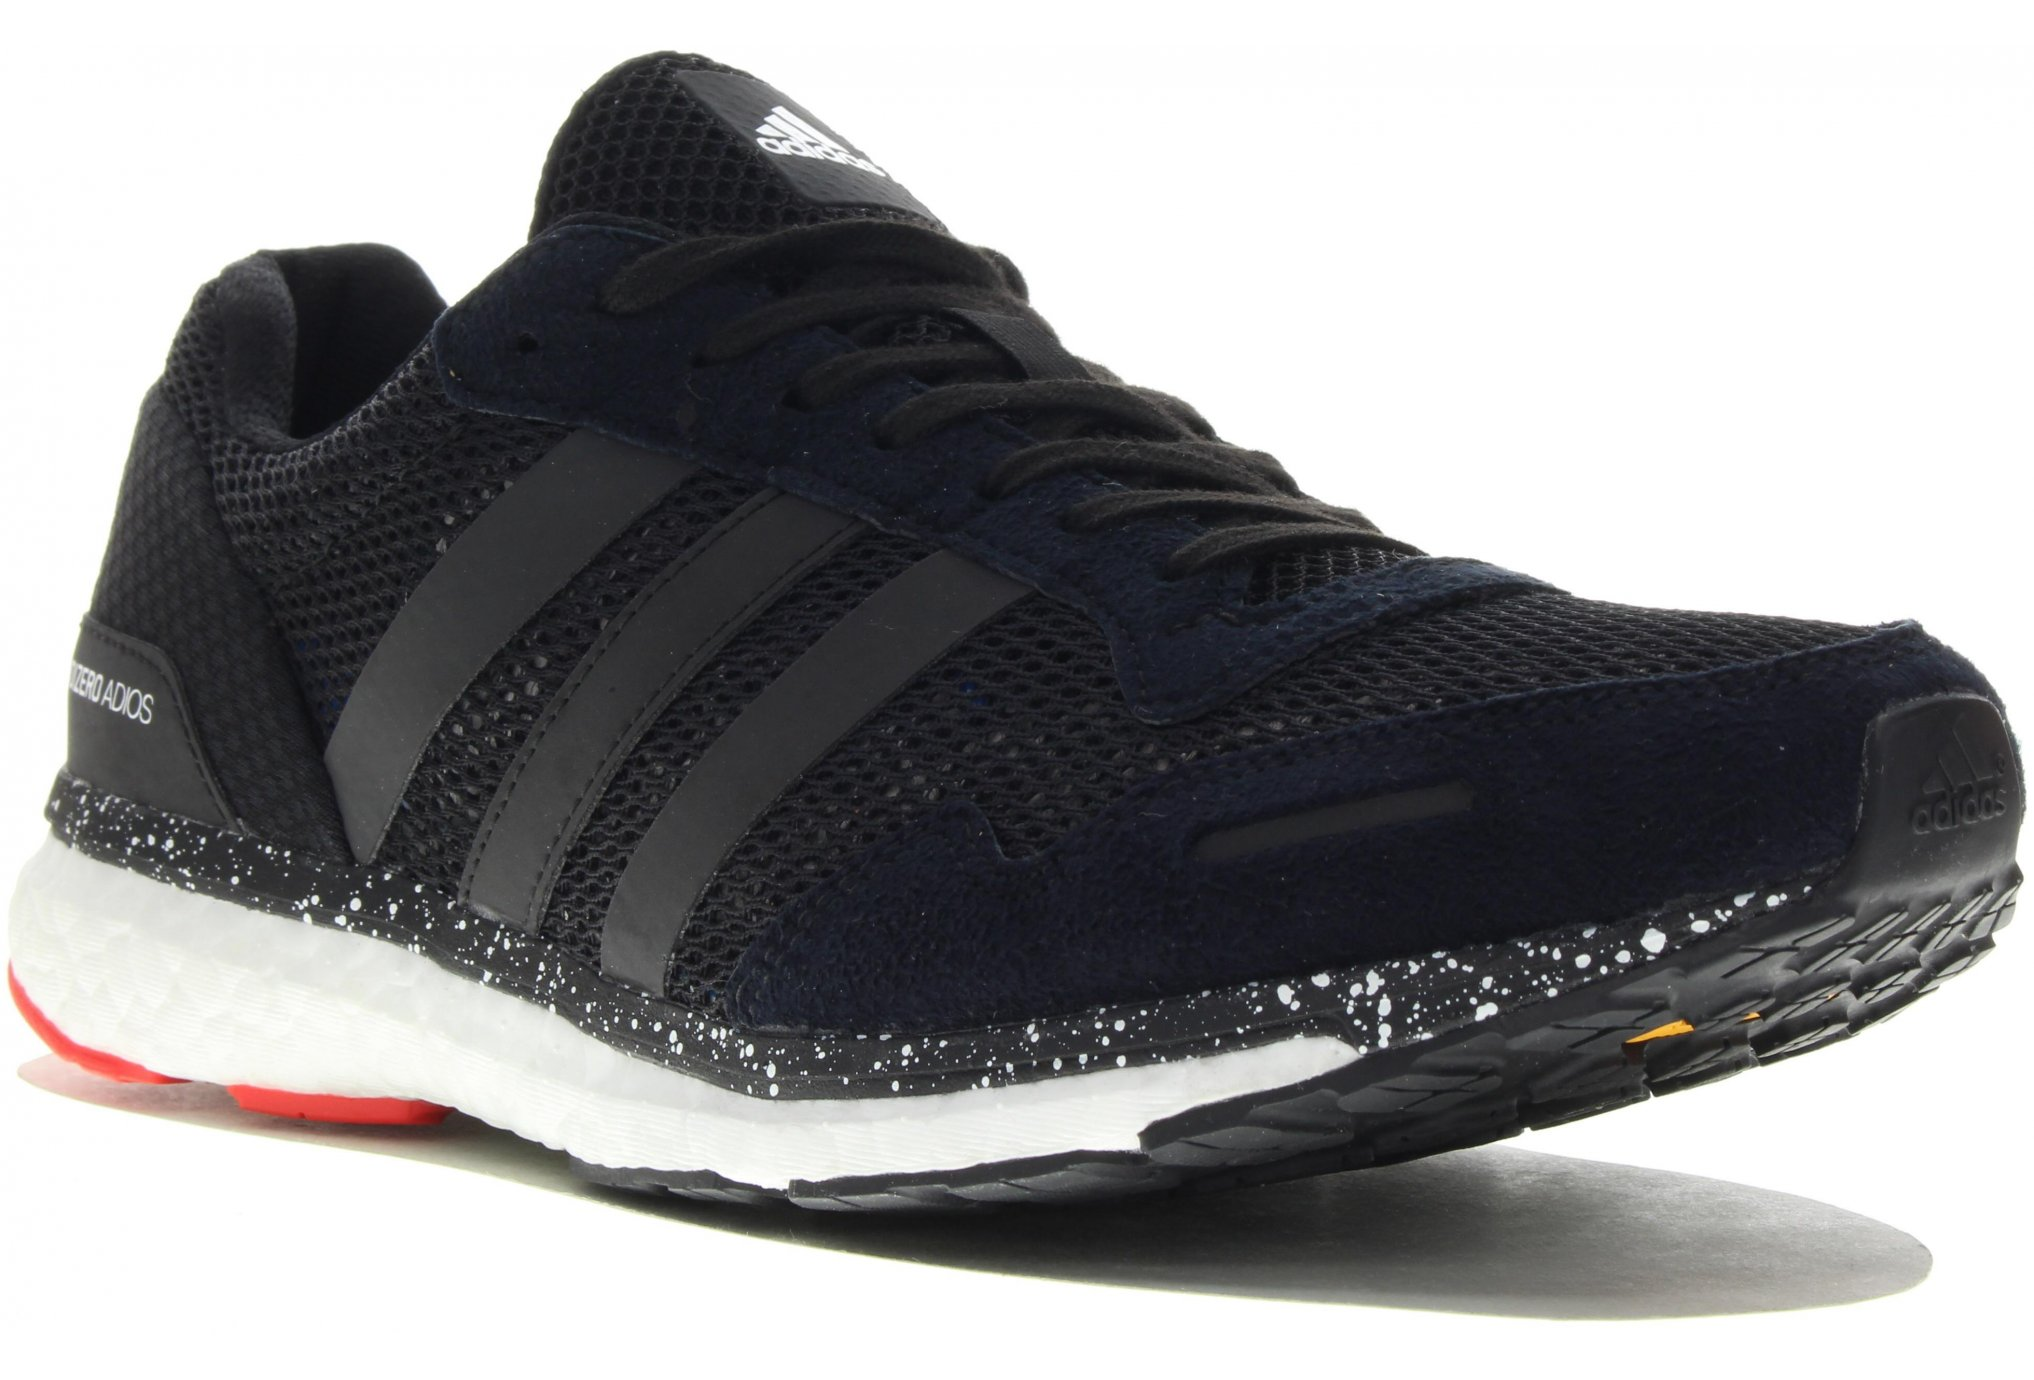 huge selection of be37c f9bfb adidas adizero adios Boost 3 M Chaussures homme